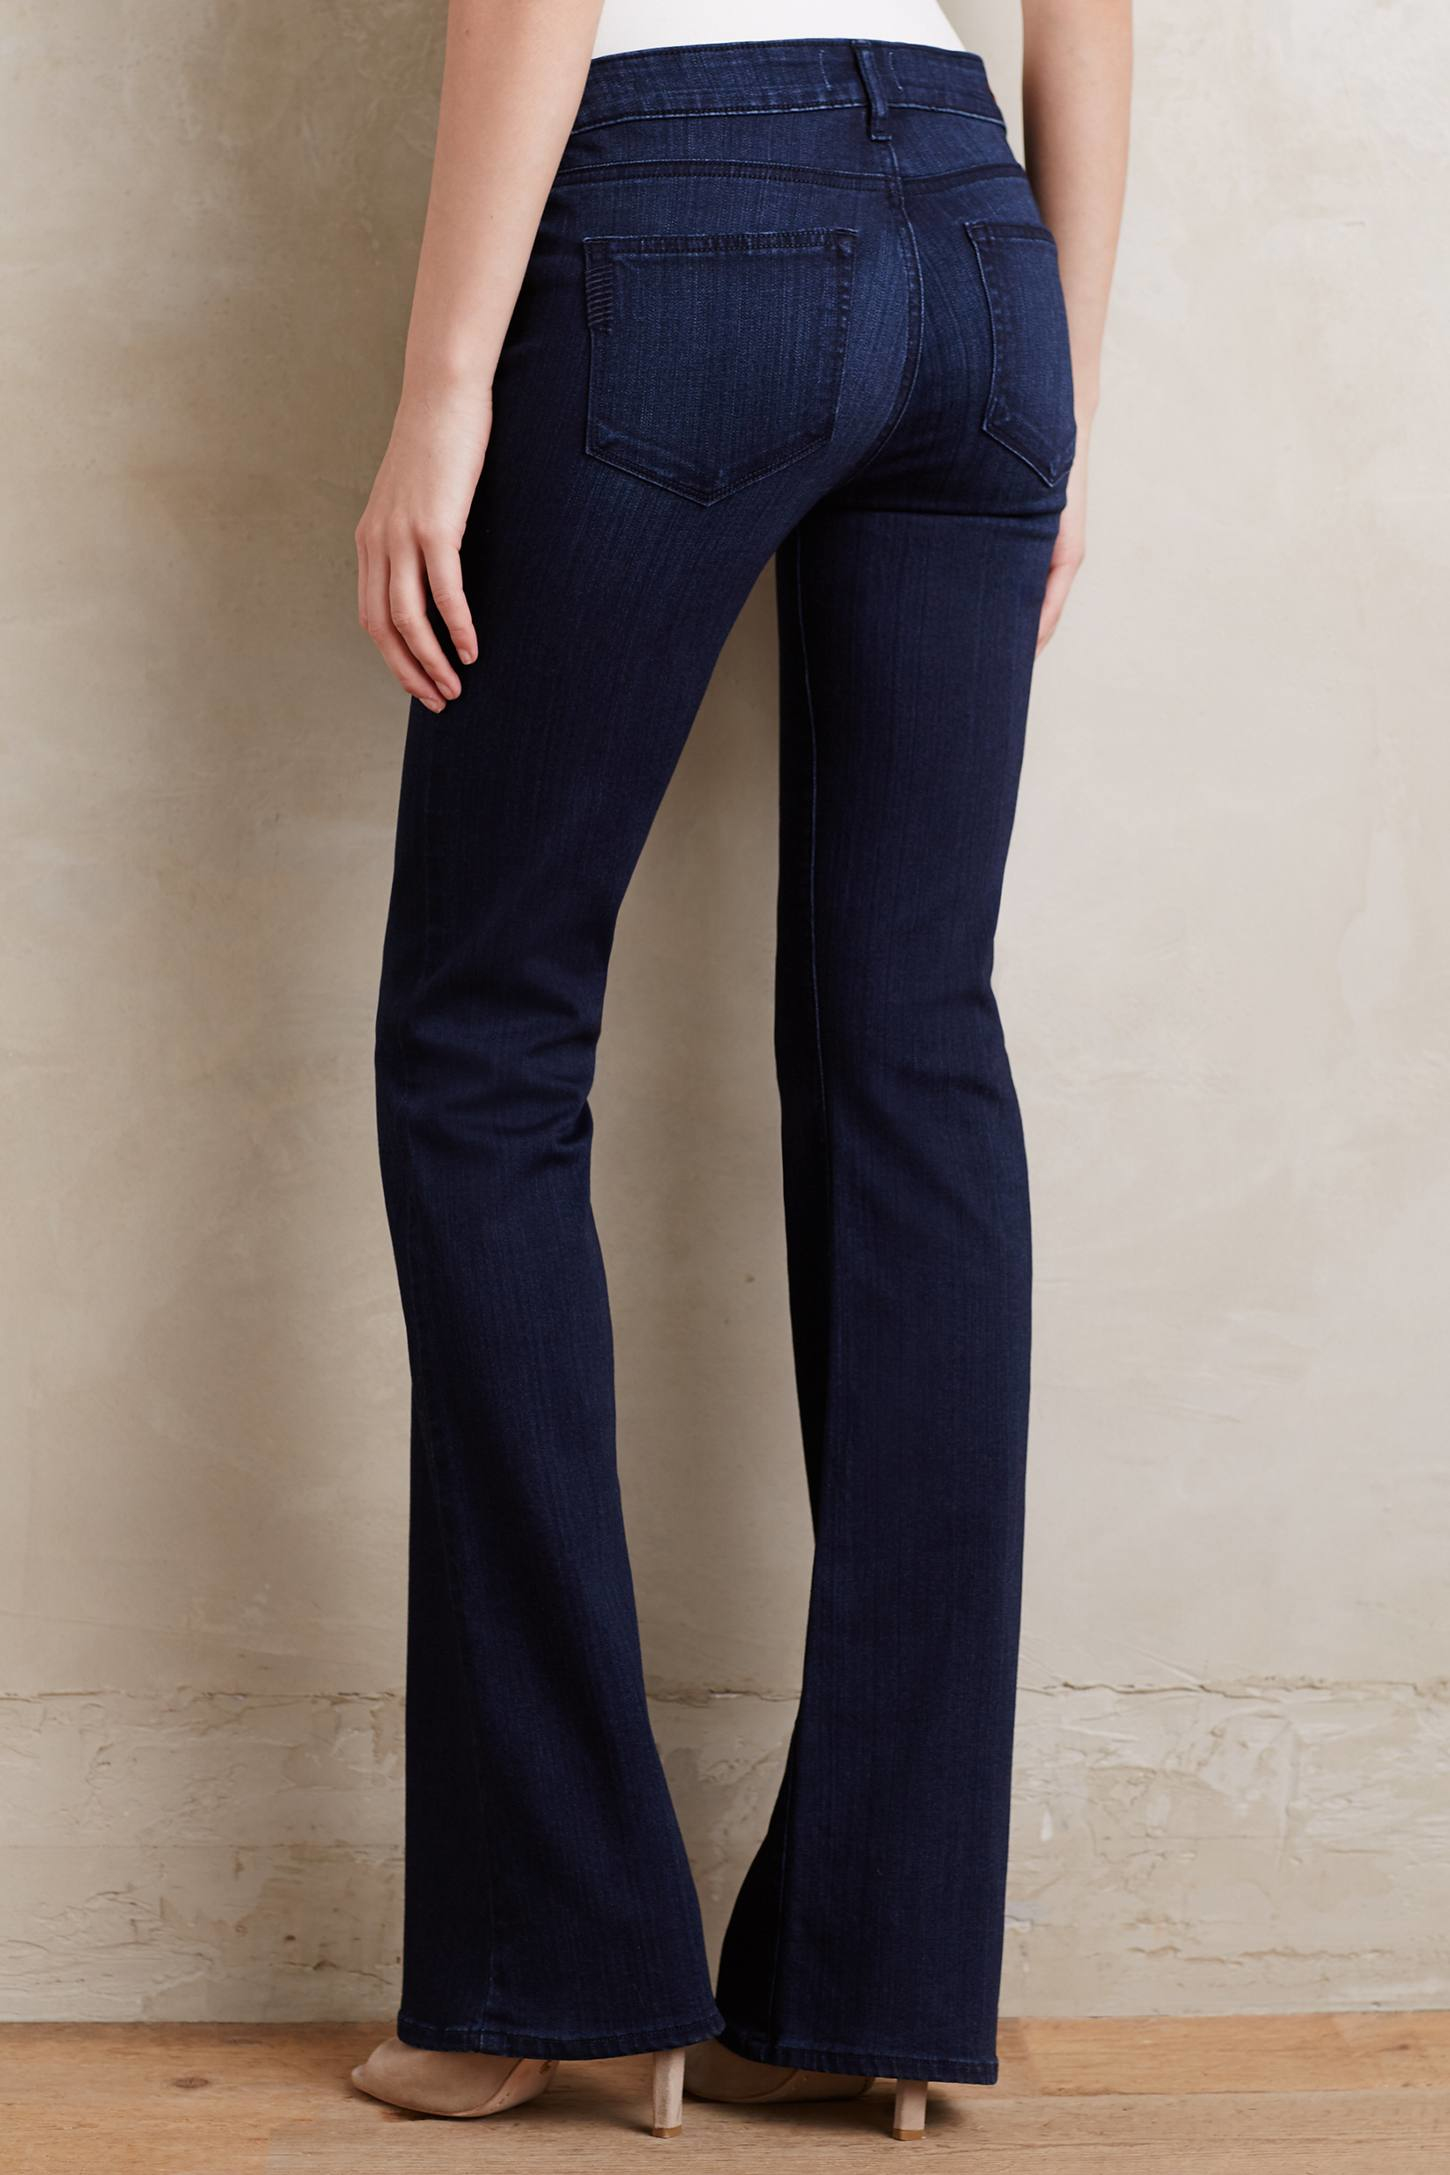 Paige Hoxton Bootcut Petite Jeans in Blue | Lyst